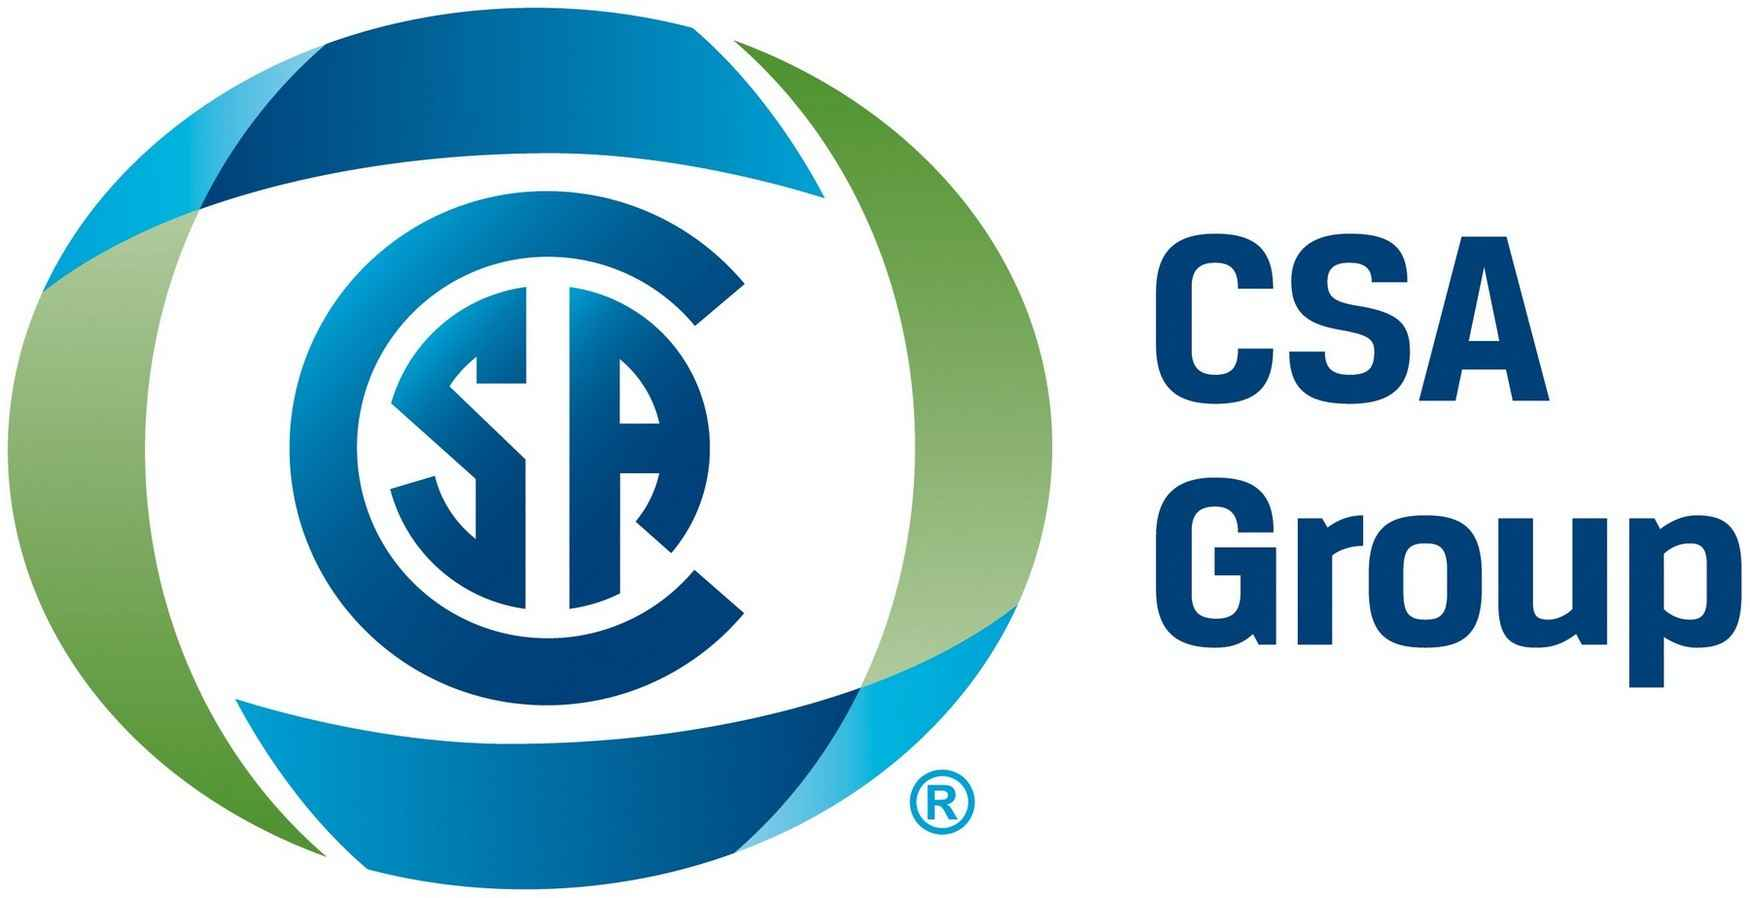 CSA Logo (Canadian Standards Association) png